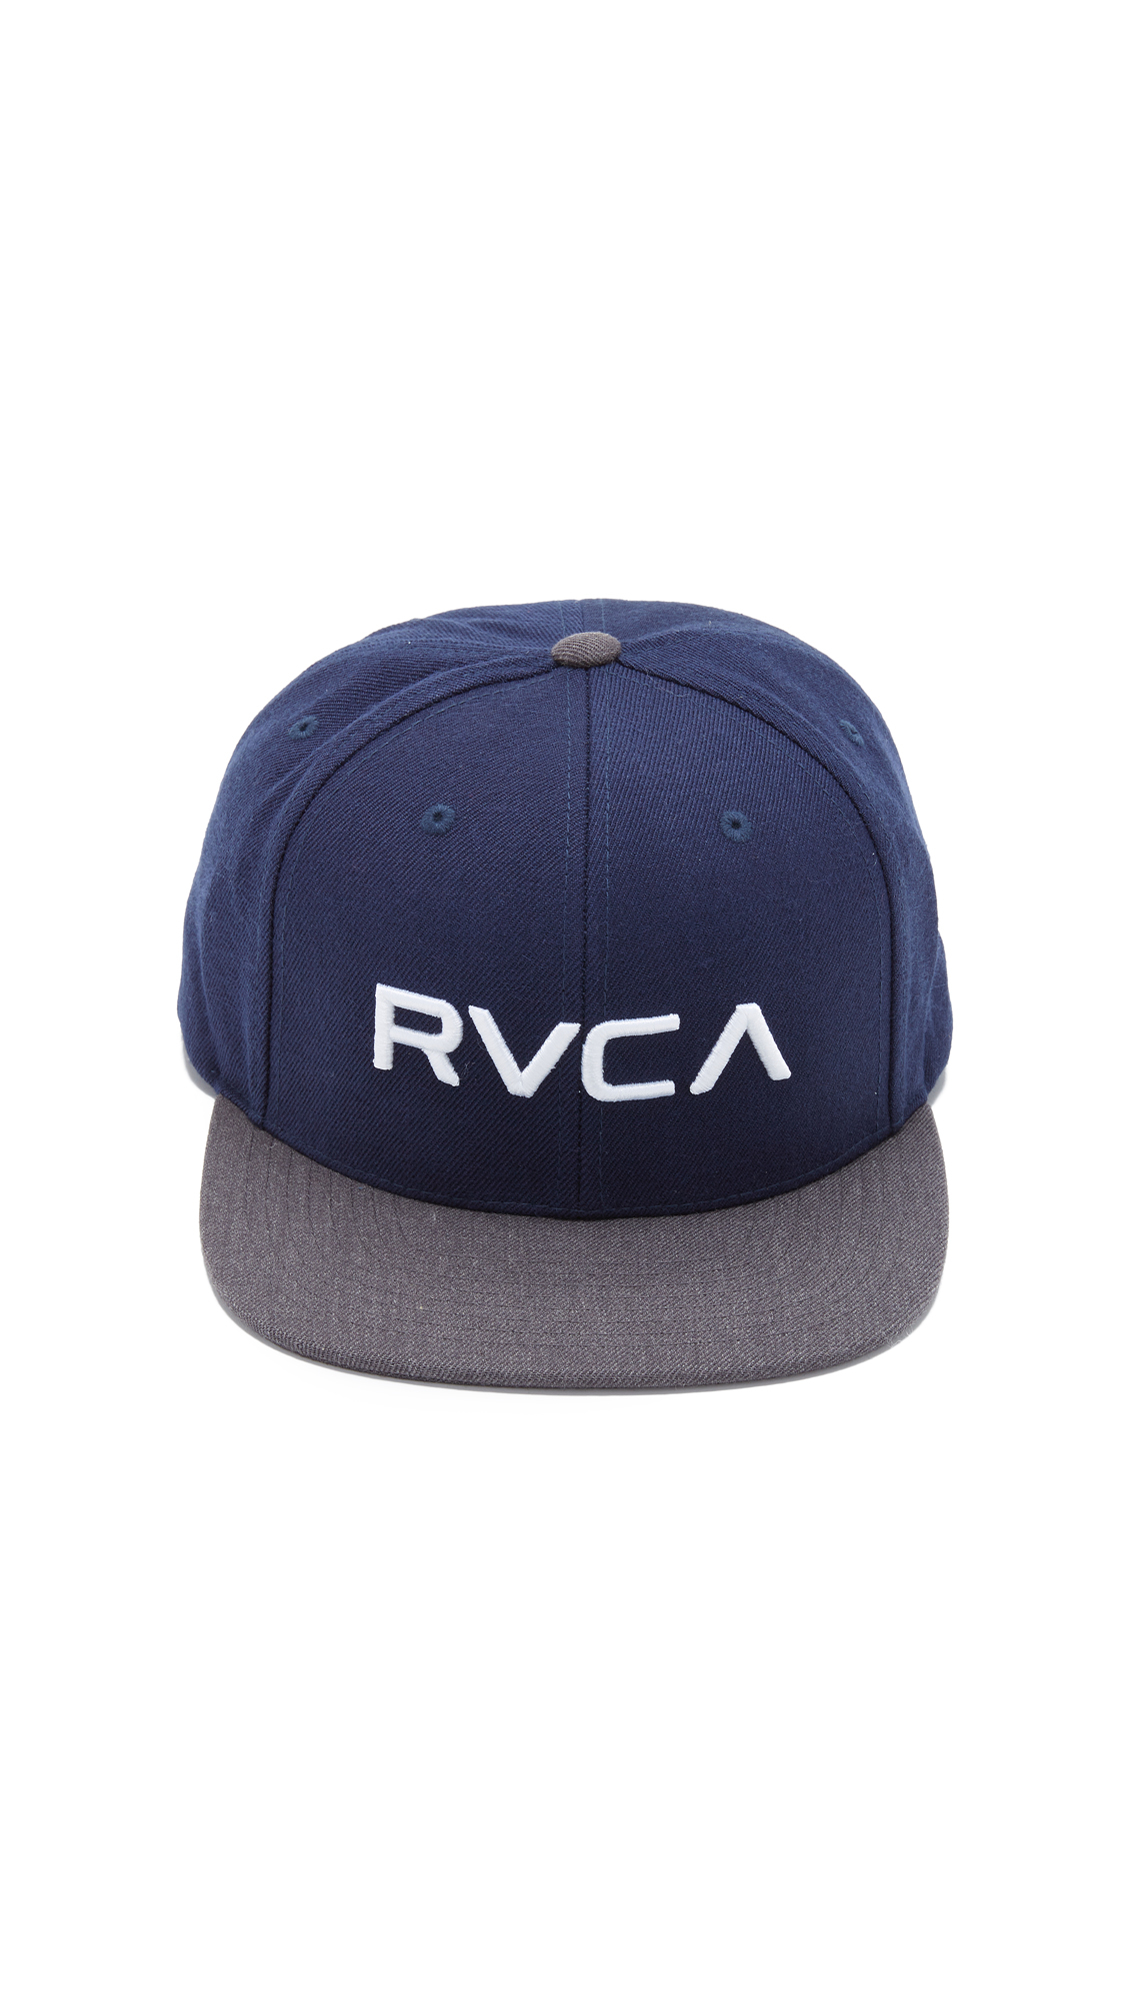 10caea3c511 cheap va snapback ii hat heather blue 58470 330be  clearance lyst rvca  twill snapback iii in blue for men 8be20 137c4